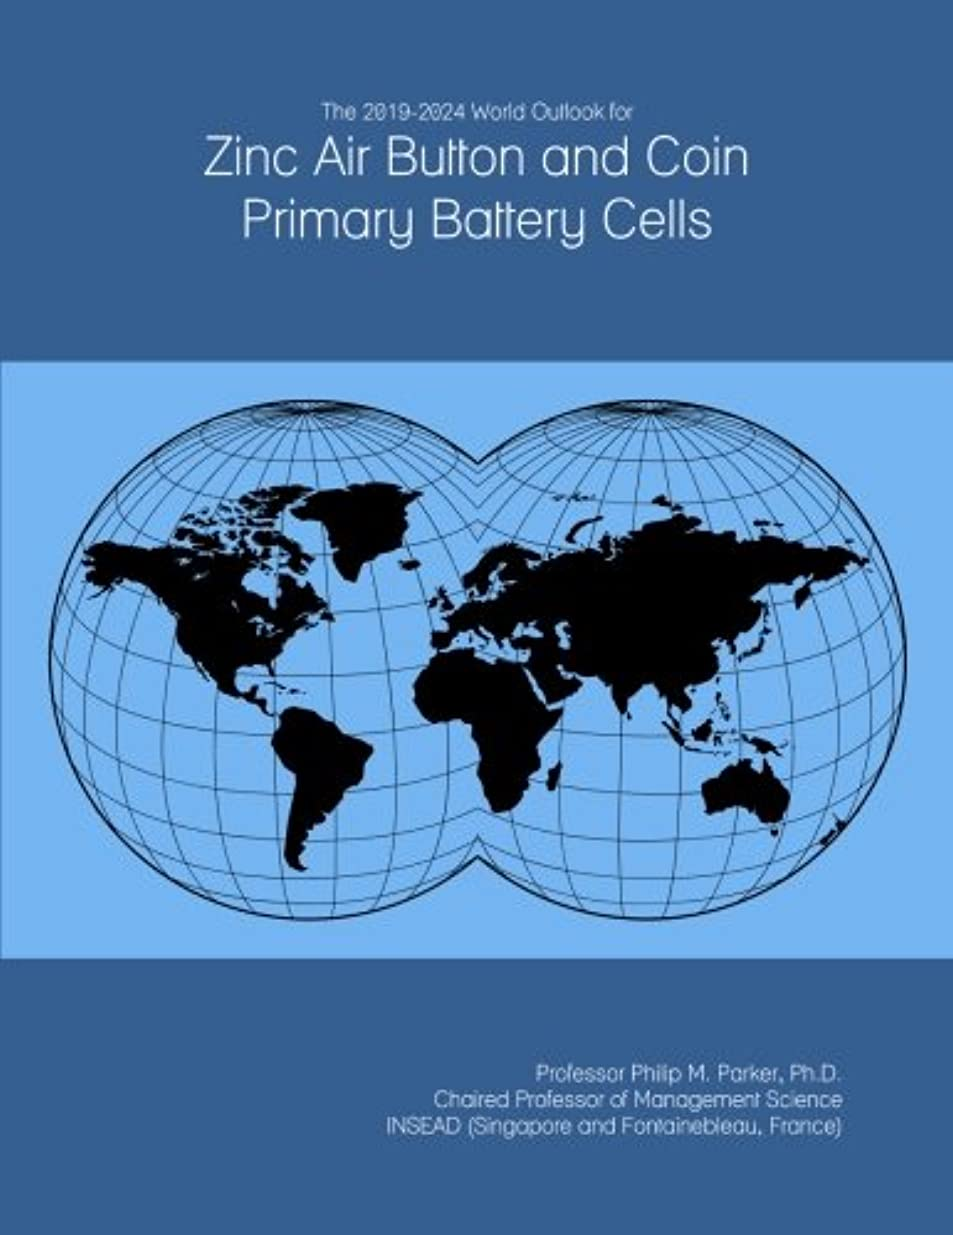 The 2019-2024 World Outlook for Zinc Air Button and Coin Primary Battery Cells